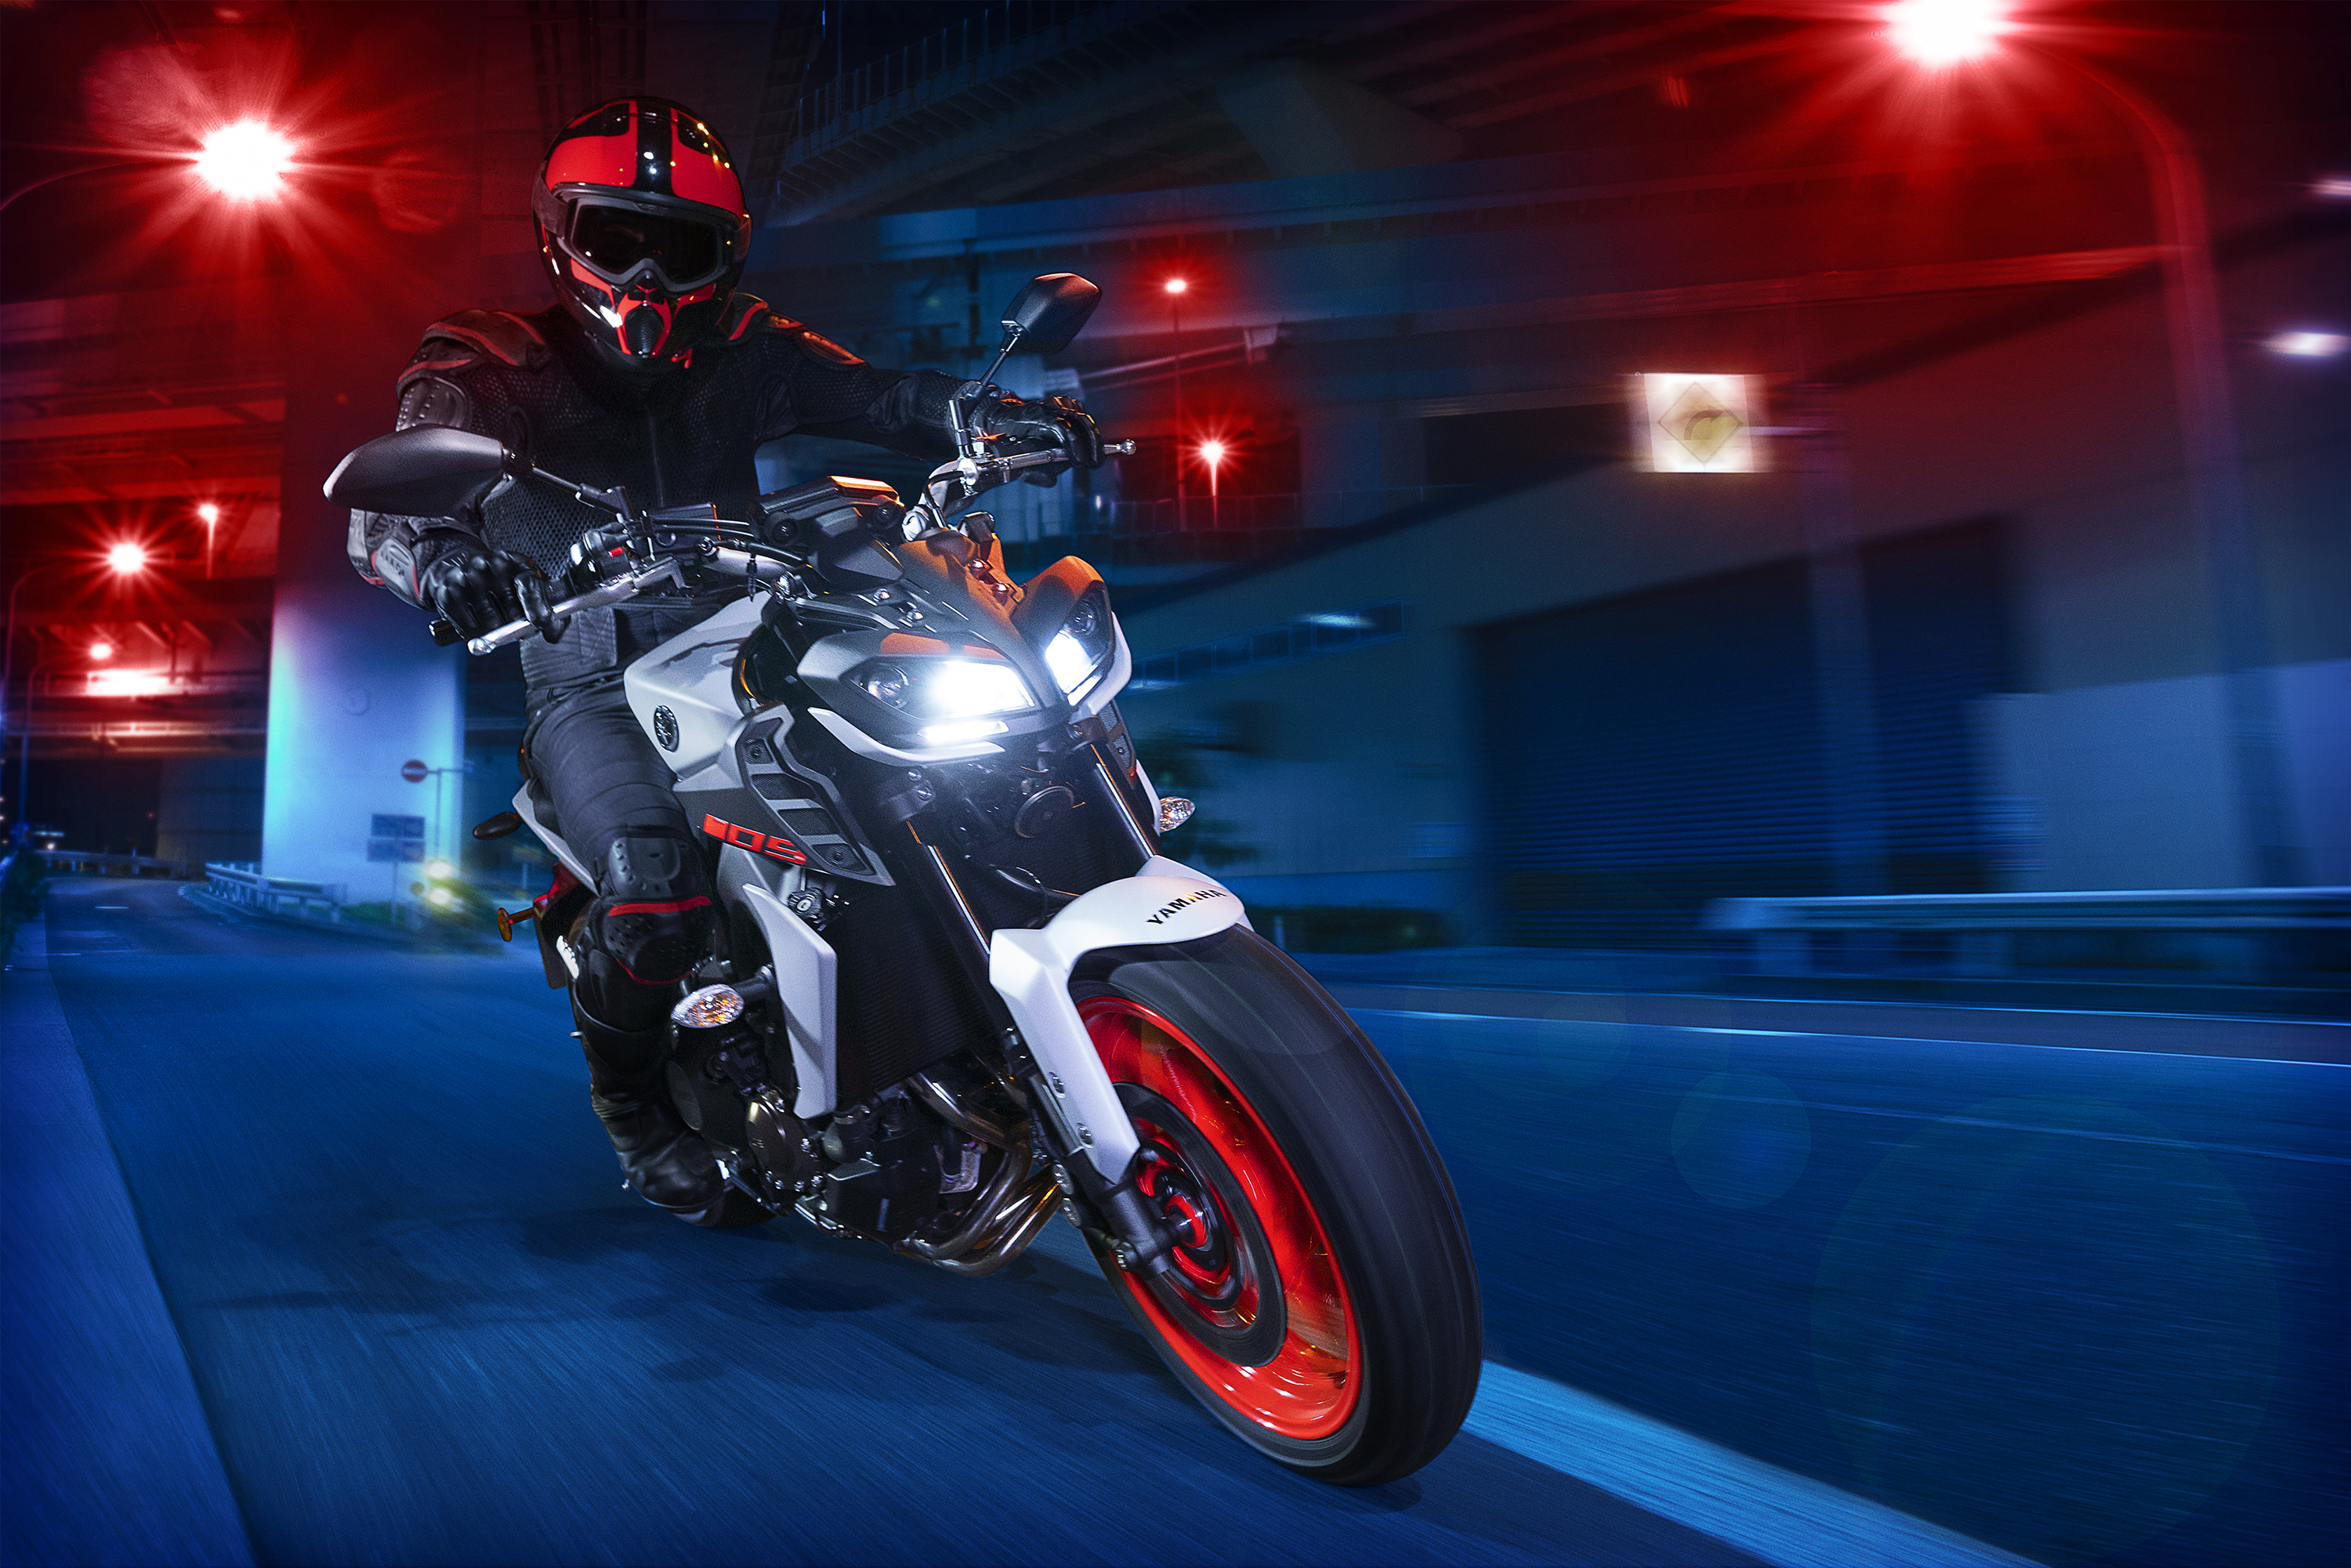 MT-09 2019 Yamaha Hyper Naked Bike Review Specs Price